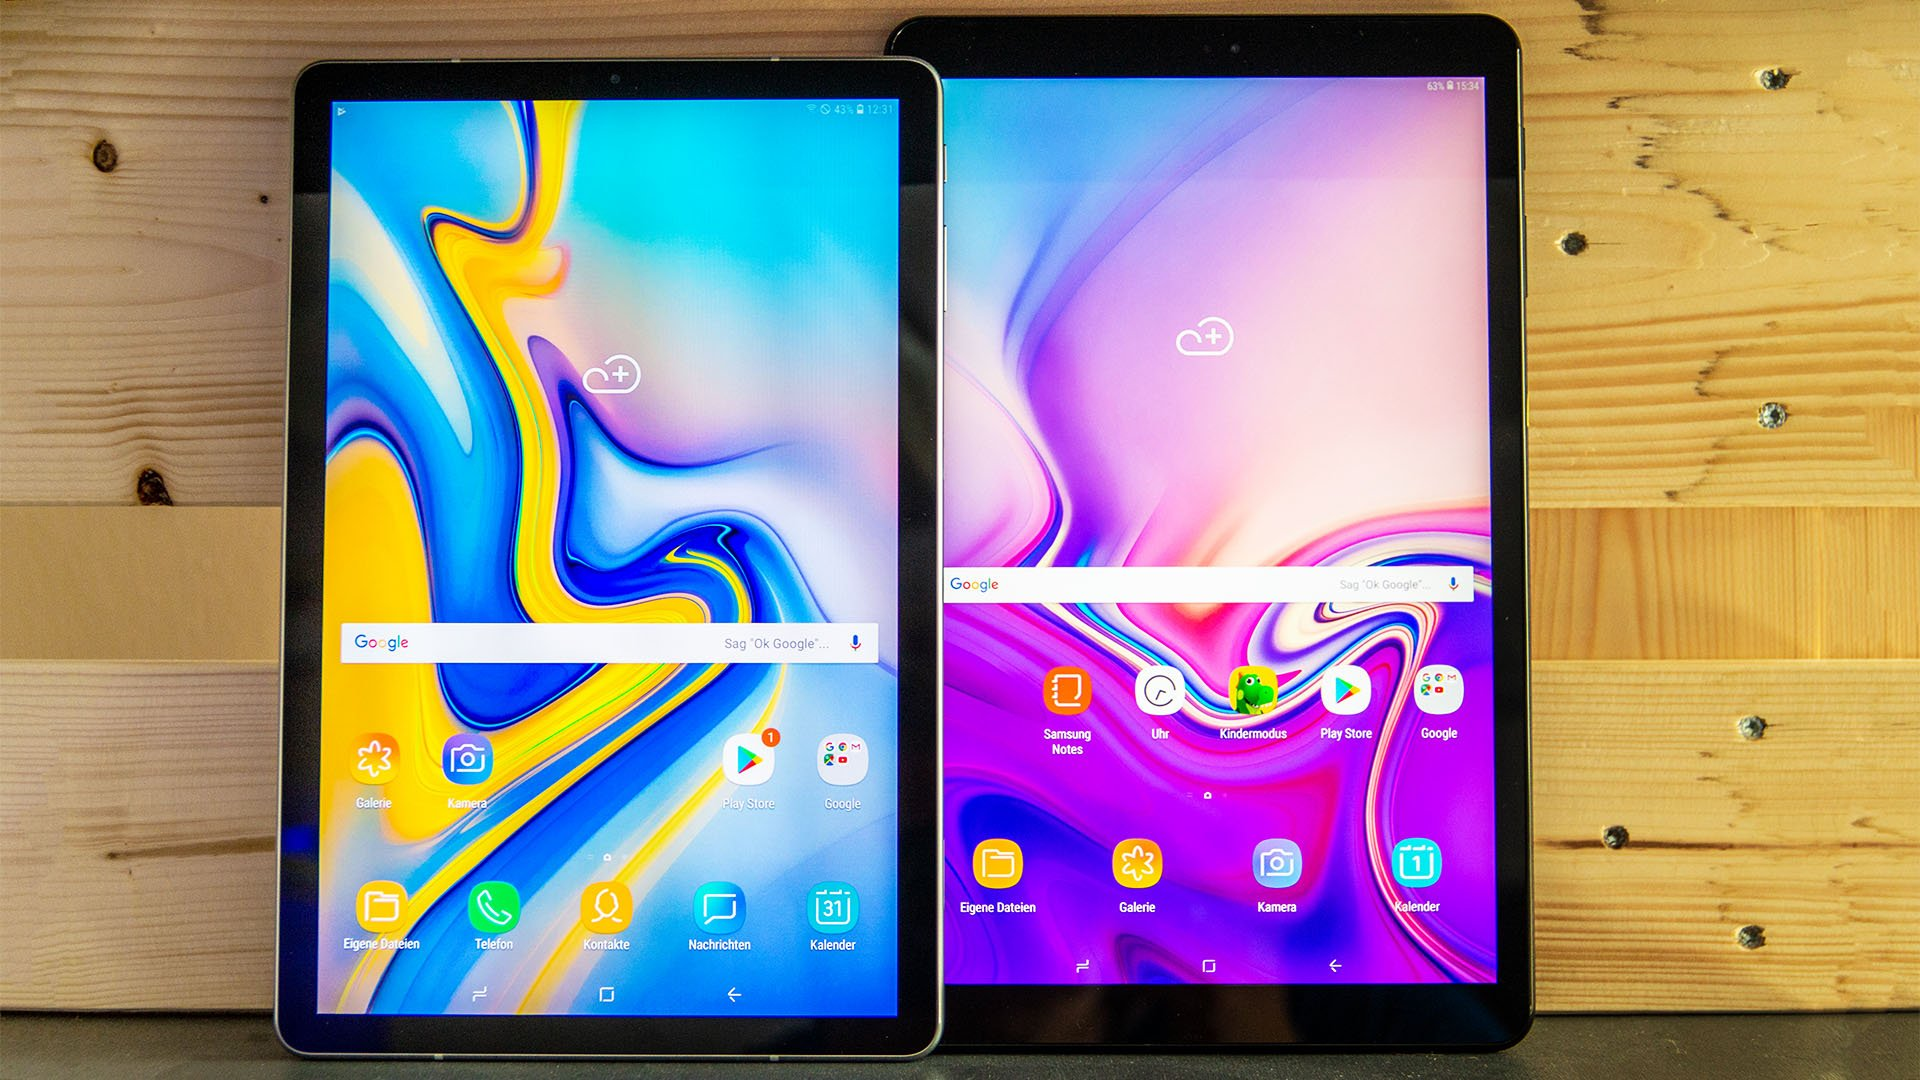 Galaxy Tab A 10 5 hands-on: not a powerhouse, but still